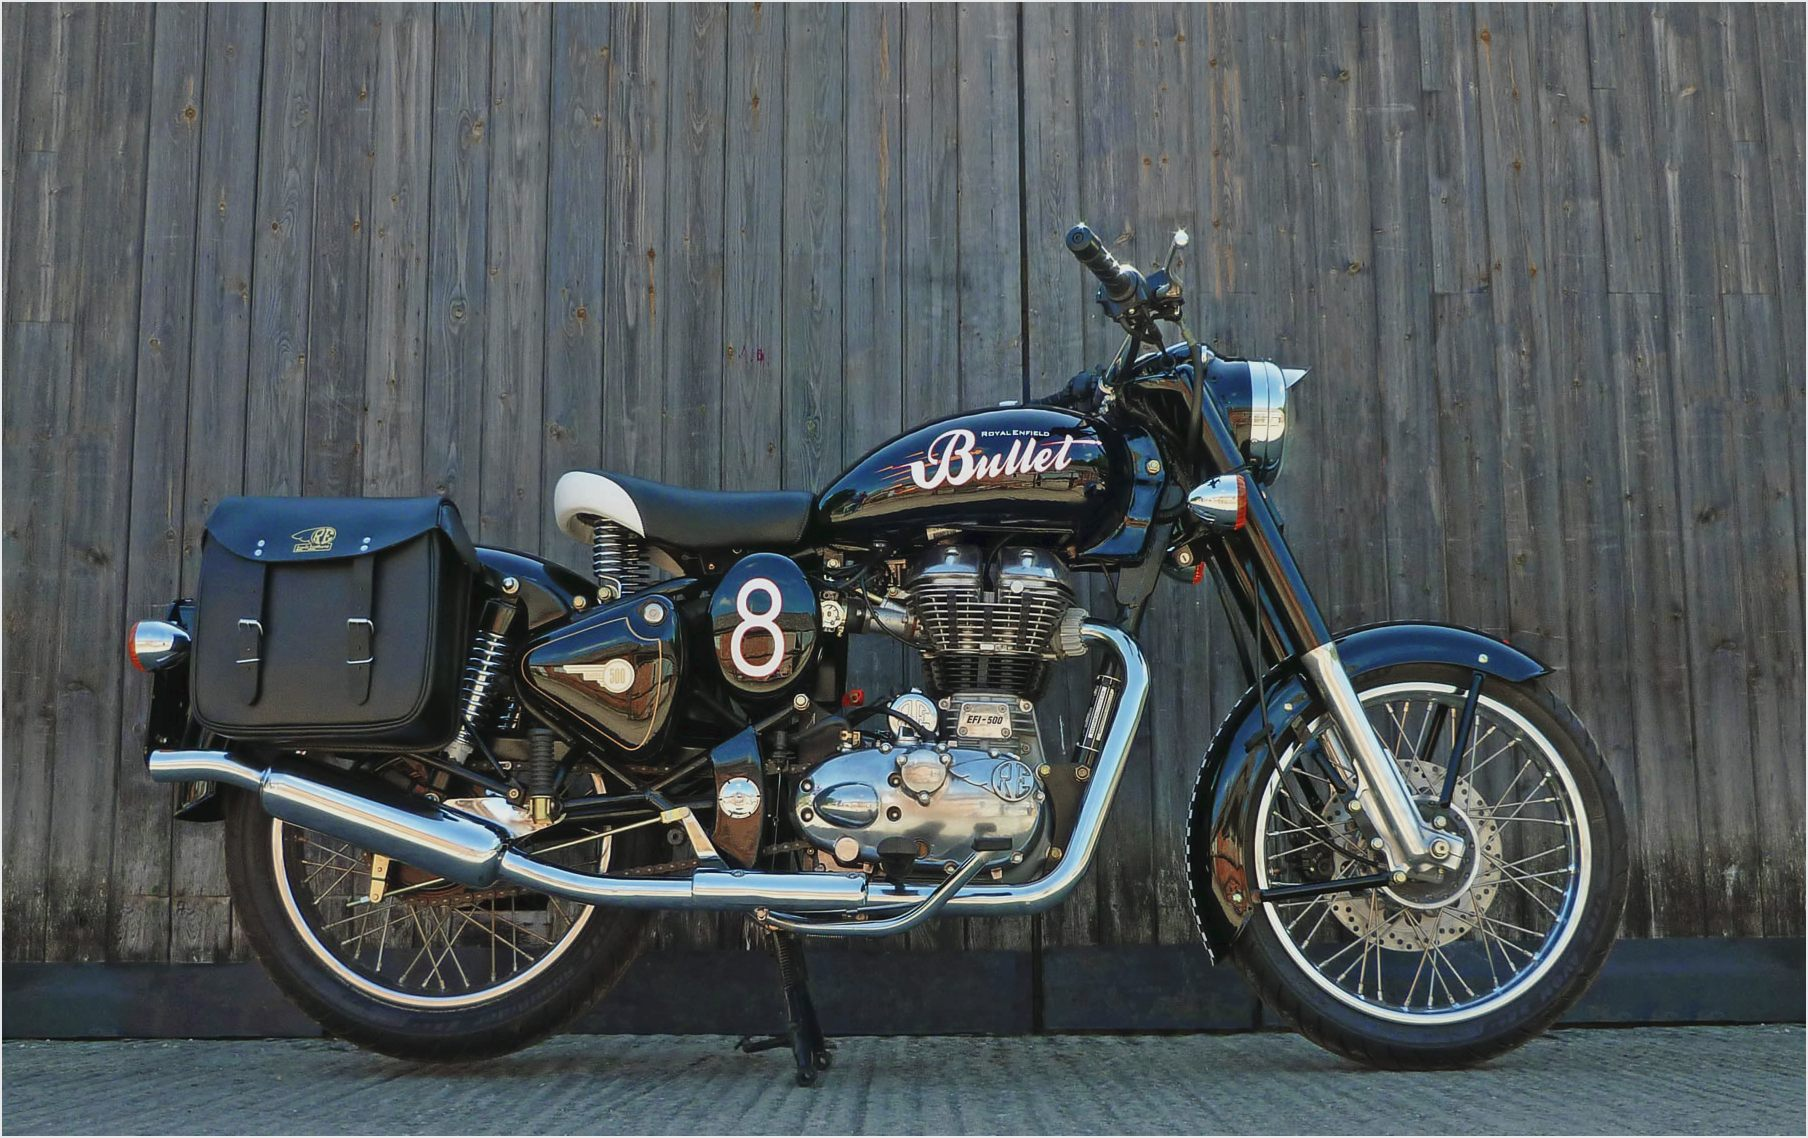 Royal Enfield Bullet 500 Classic 2008 images #127689